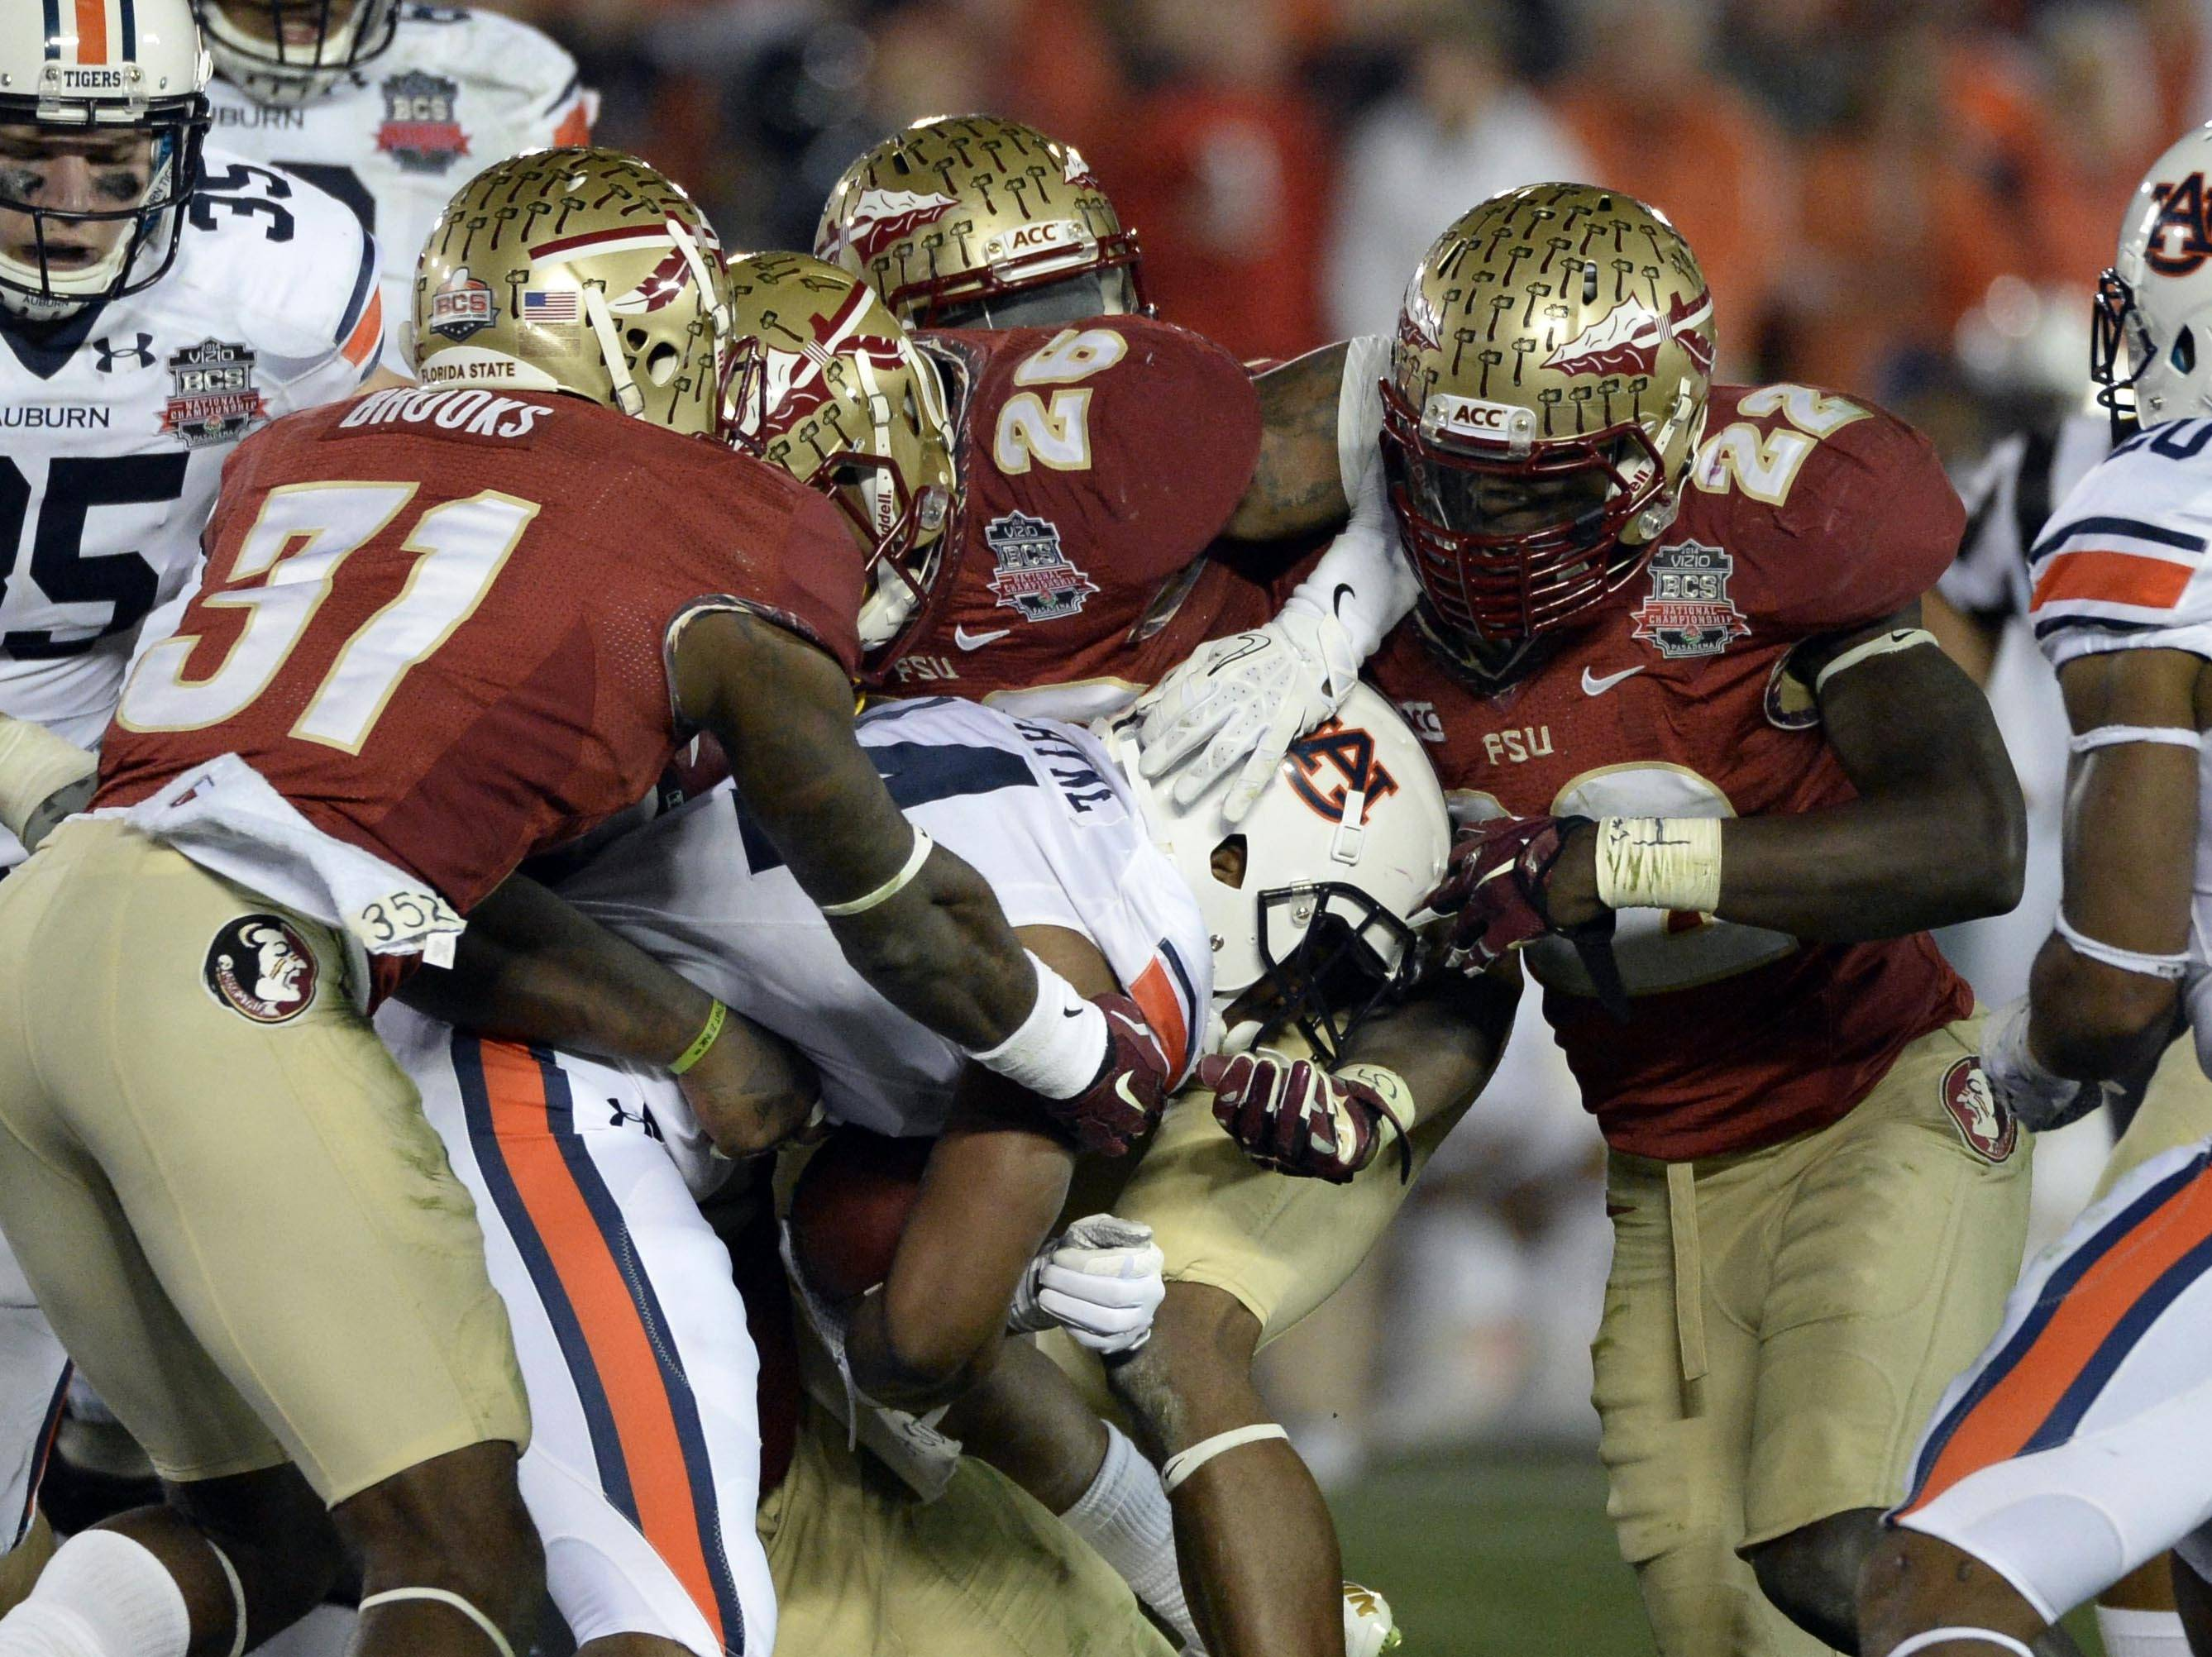 Jan 6, 2014; Pasadena, CA, USA; Florida State Seminoles linebacker Telvin Smith (22) and defensive back Terrence Brooks (31) and defensive back P.J. Williams (26) tackle Auburn Tigers running back Cameron Artis-Payne (44) during the second half of the 2014 BCS National Championship game at the Rose Bowl.  Mandatory Credit: Richard Mackson-USA TODAY Sports